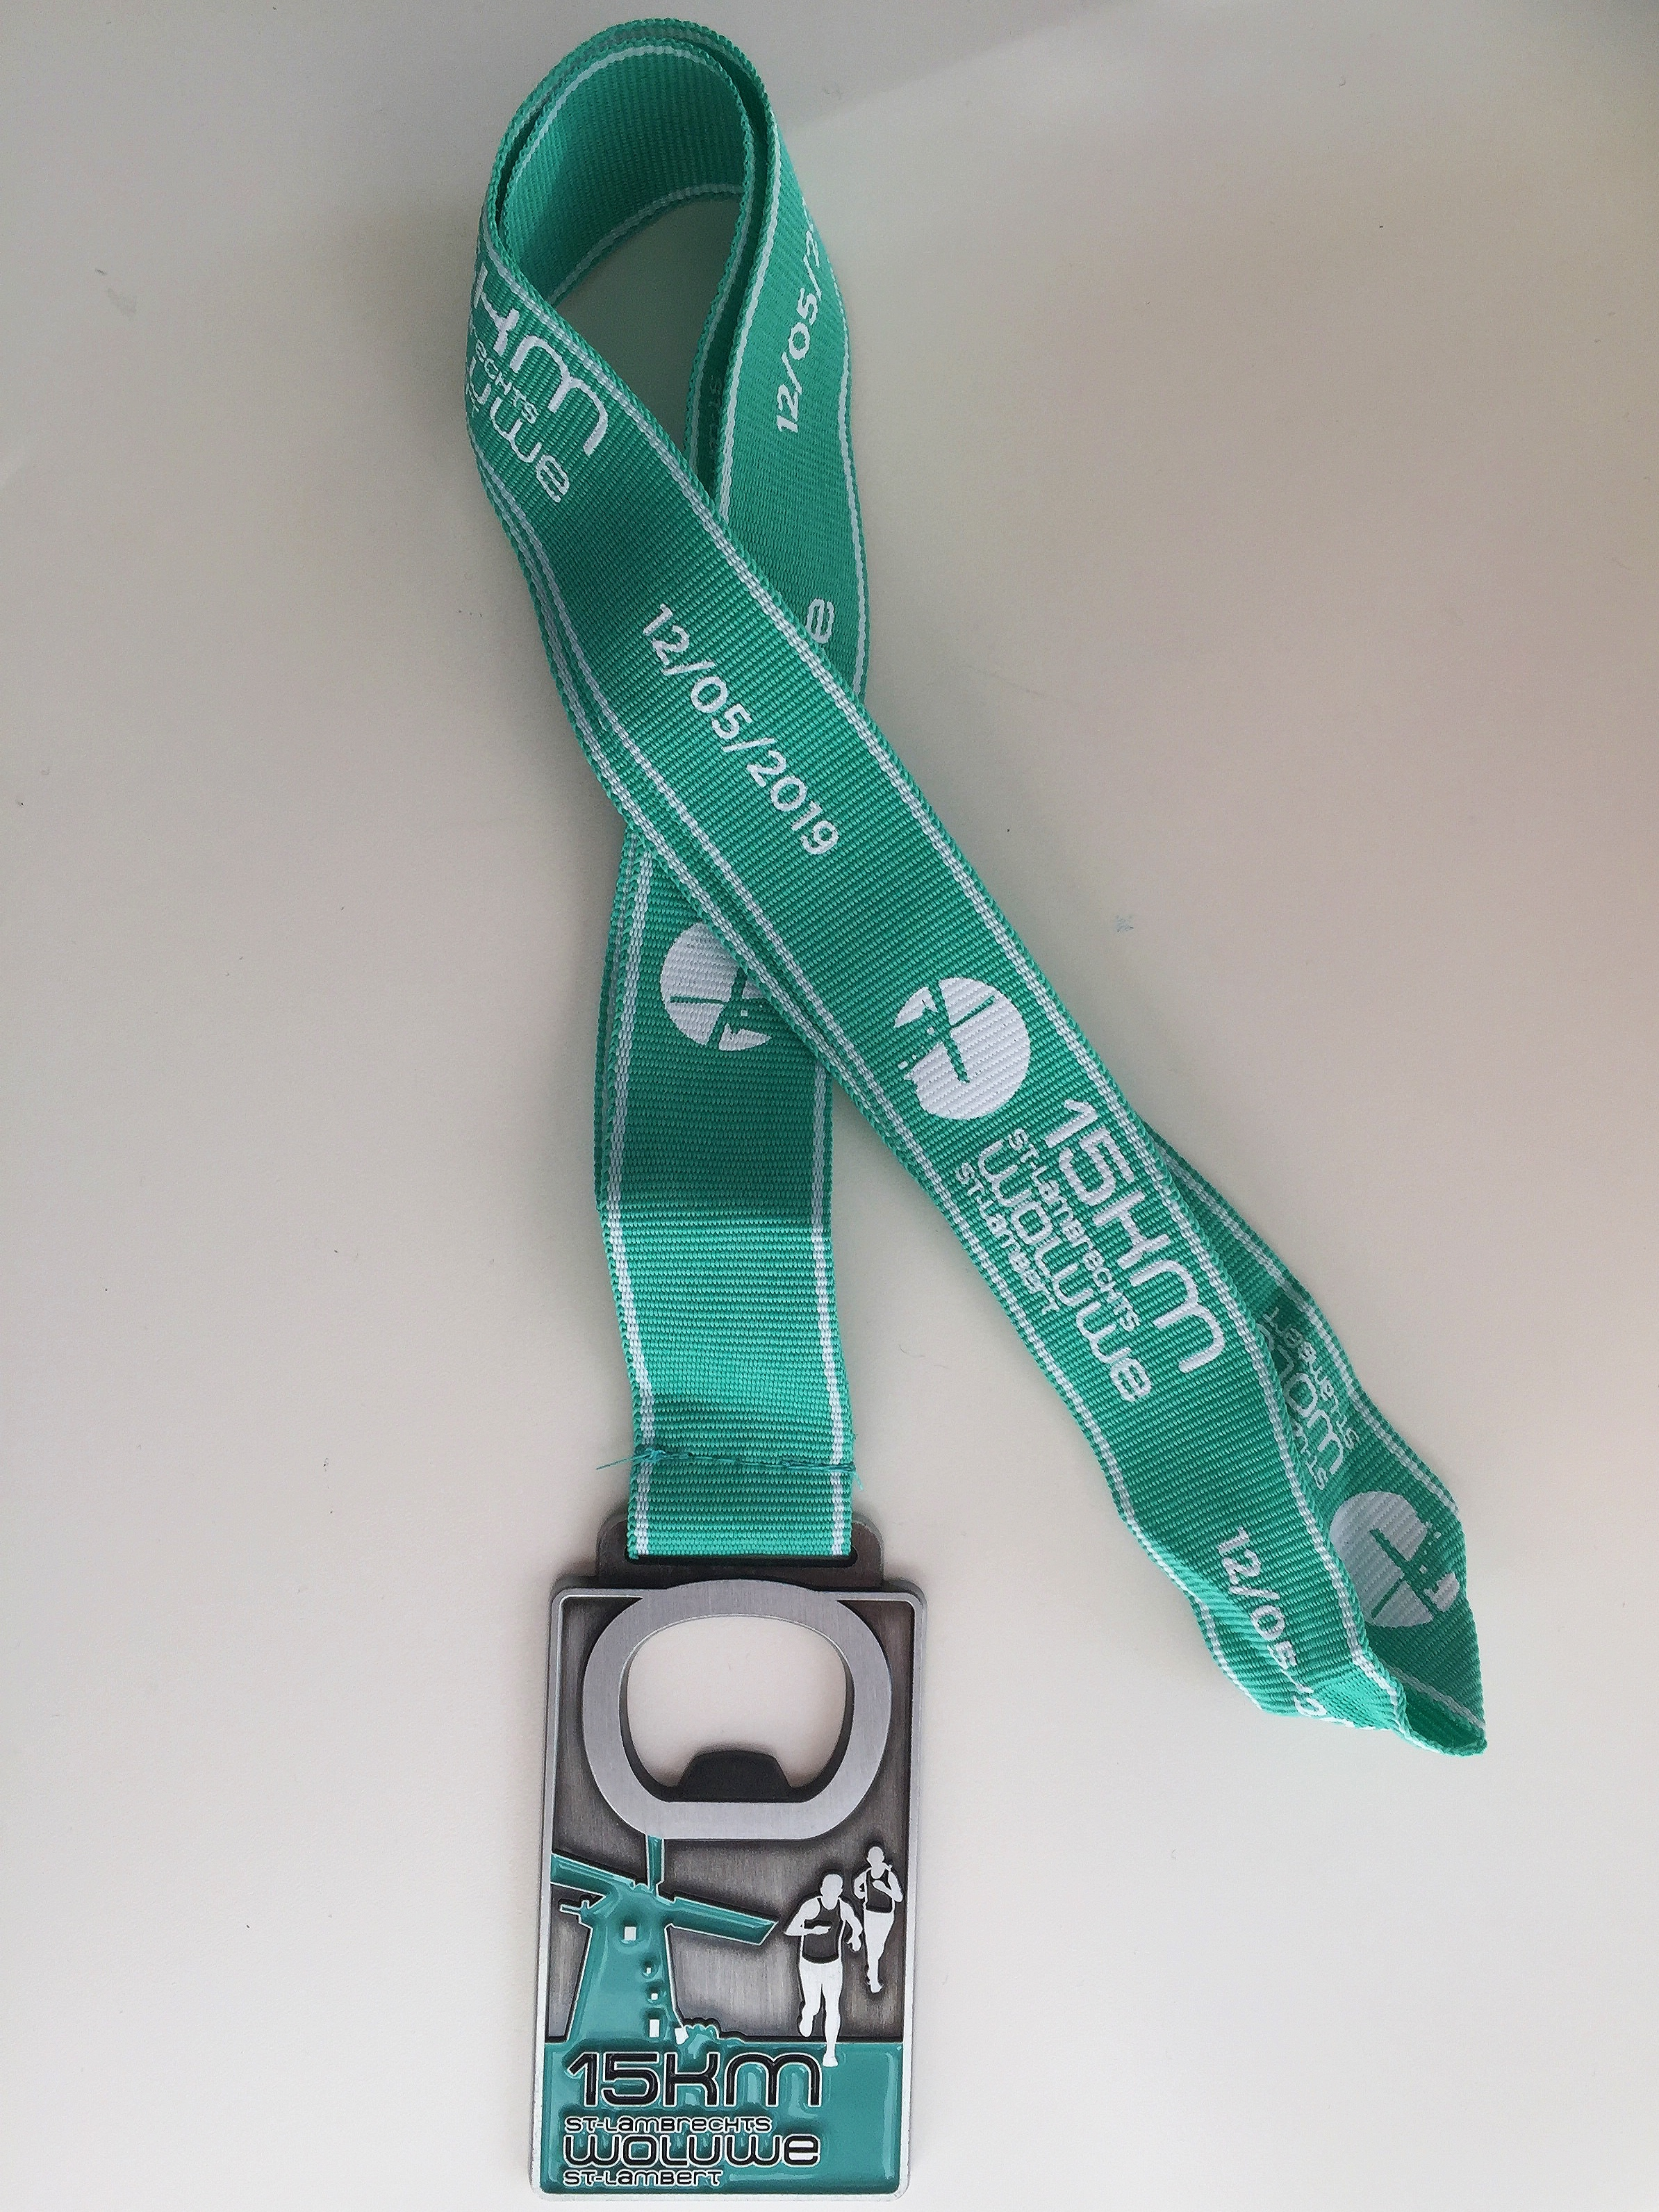 The 15km medal (and beer opener)